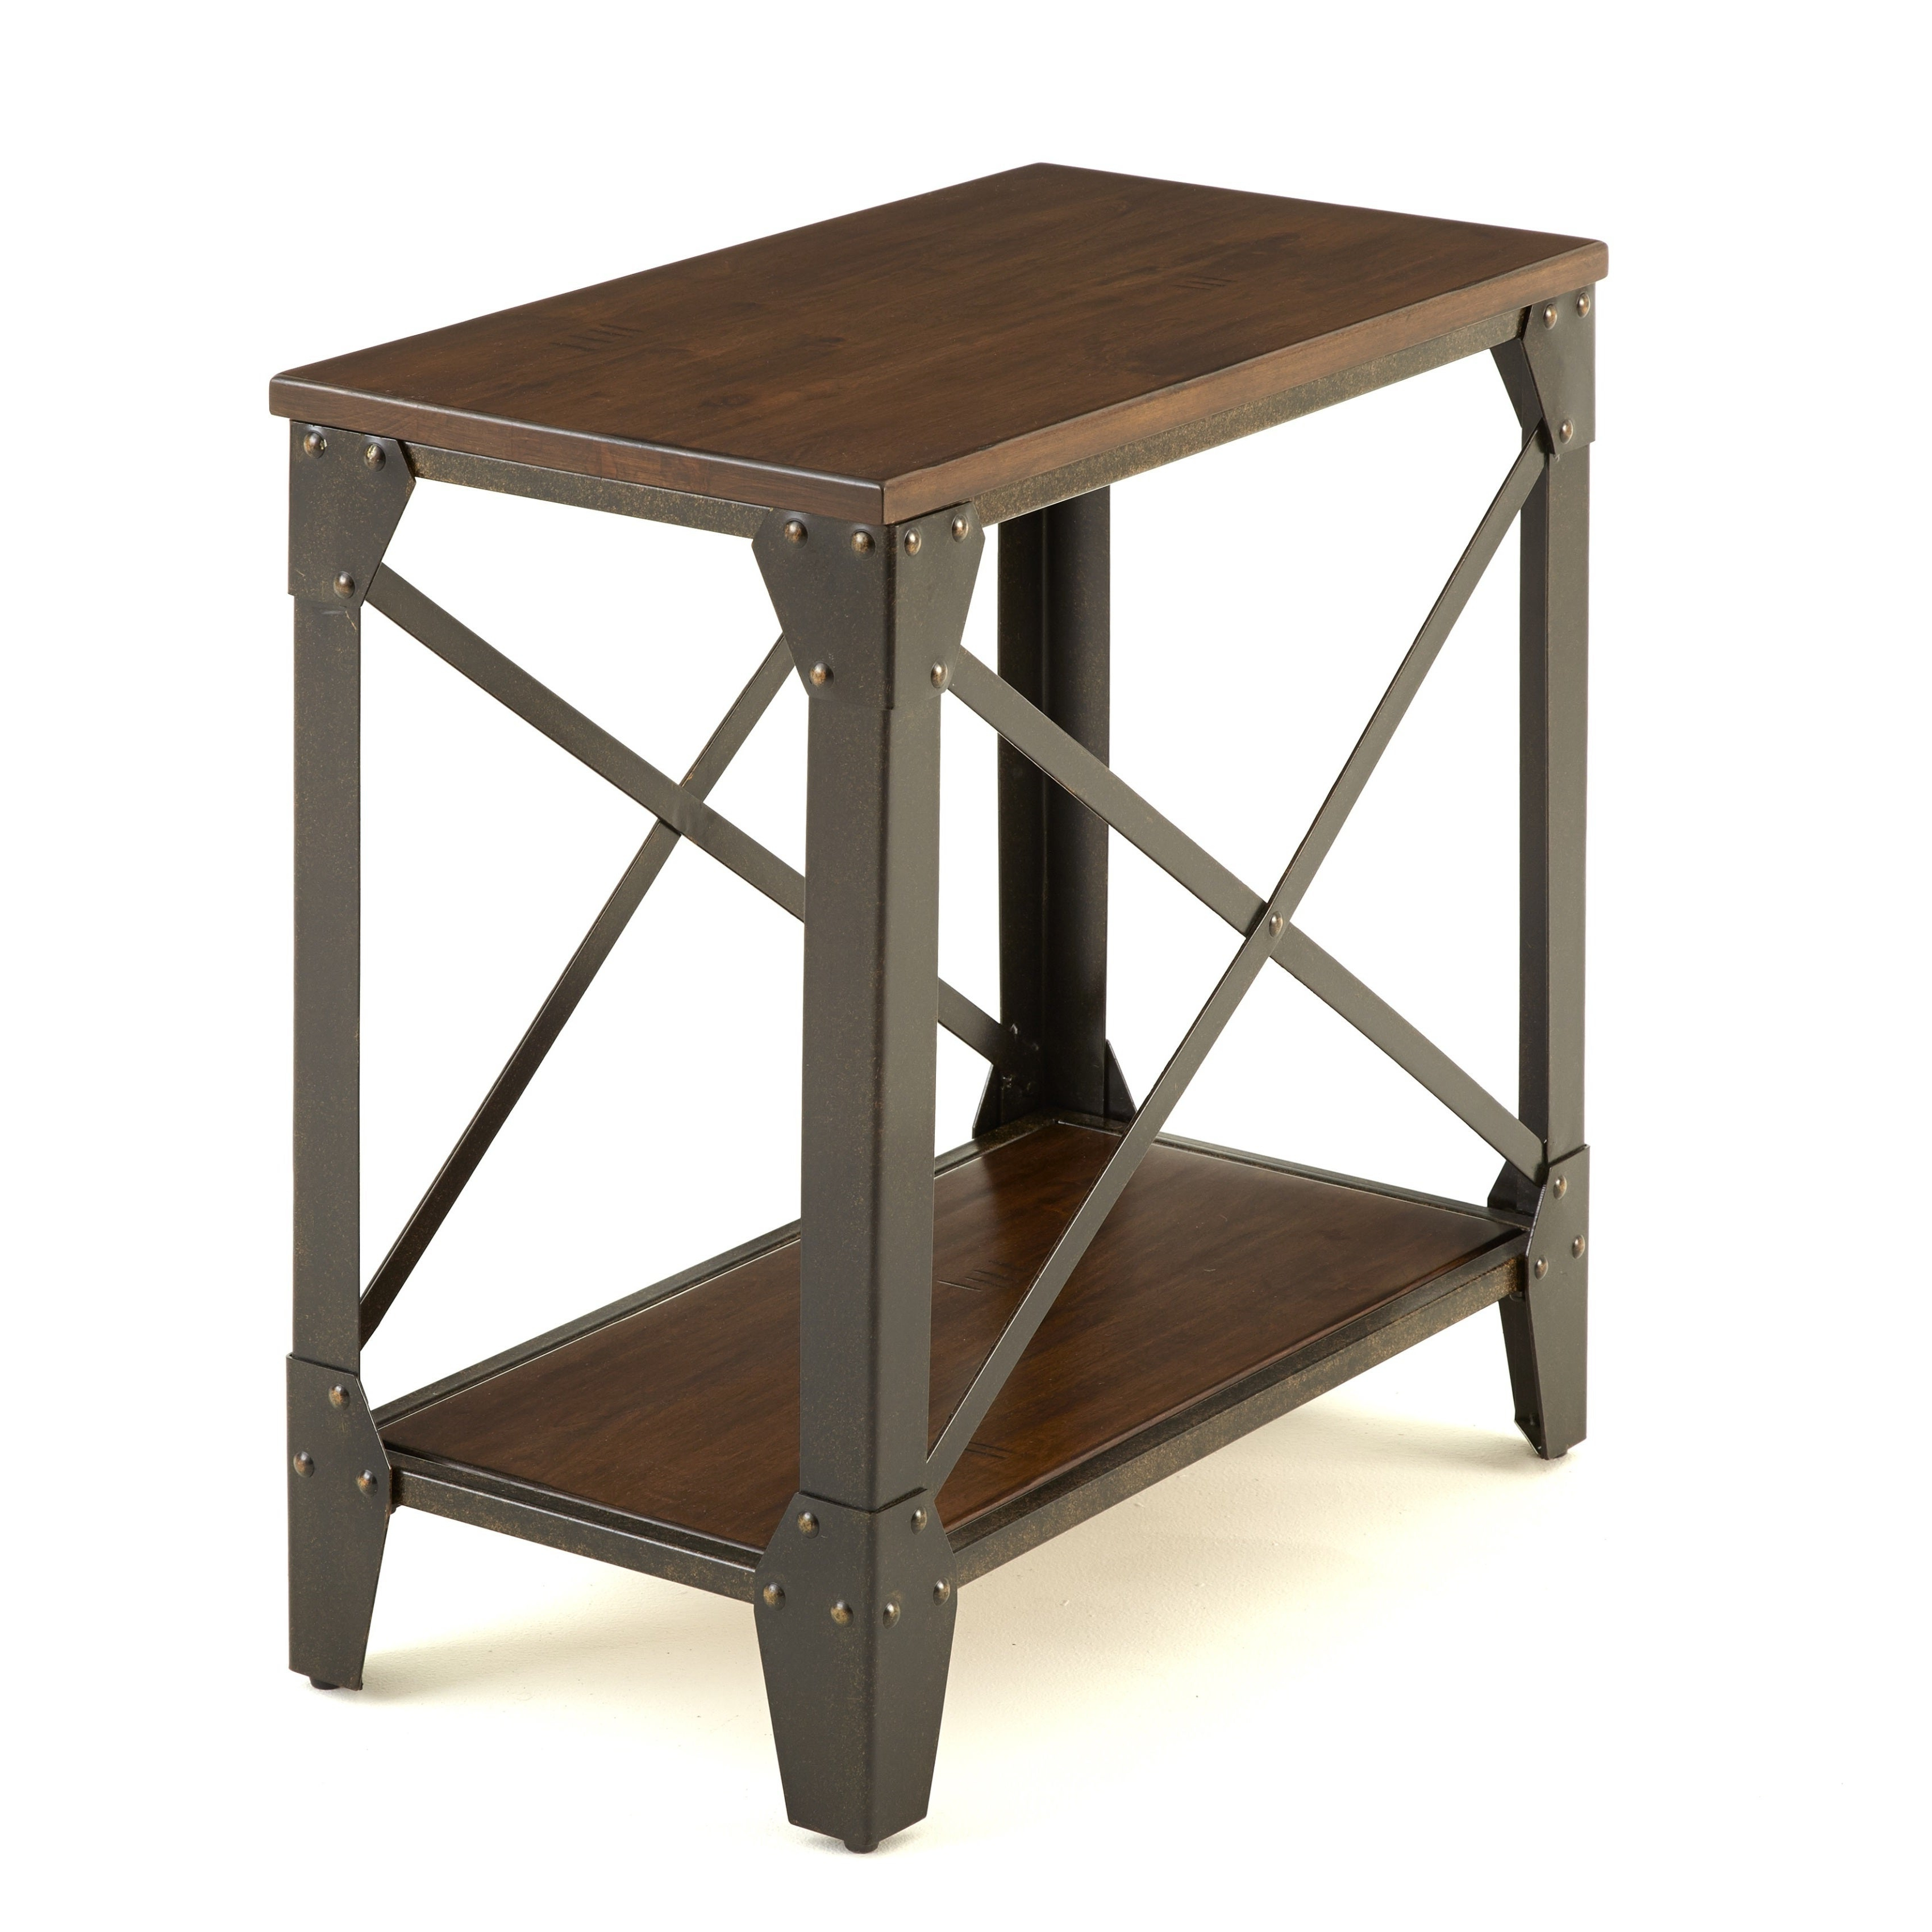 Carbon Loft Fischer Solid Wood And Iron Rustic Chairside Table Within Current Carbon Loft Fischer Brown Solid Birch And Iron Rustic Coffee Tables (View 4 of 20)